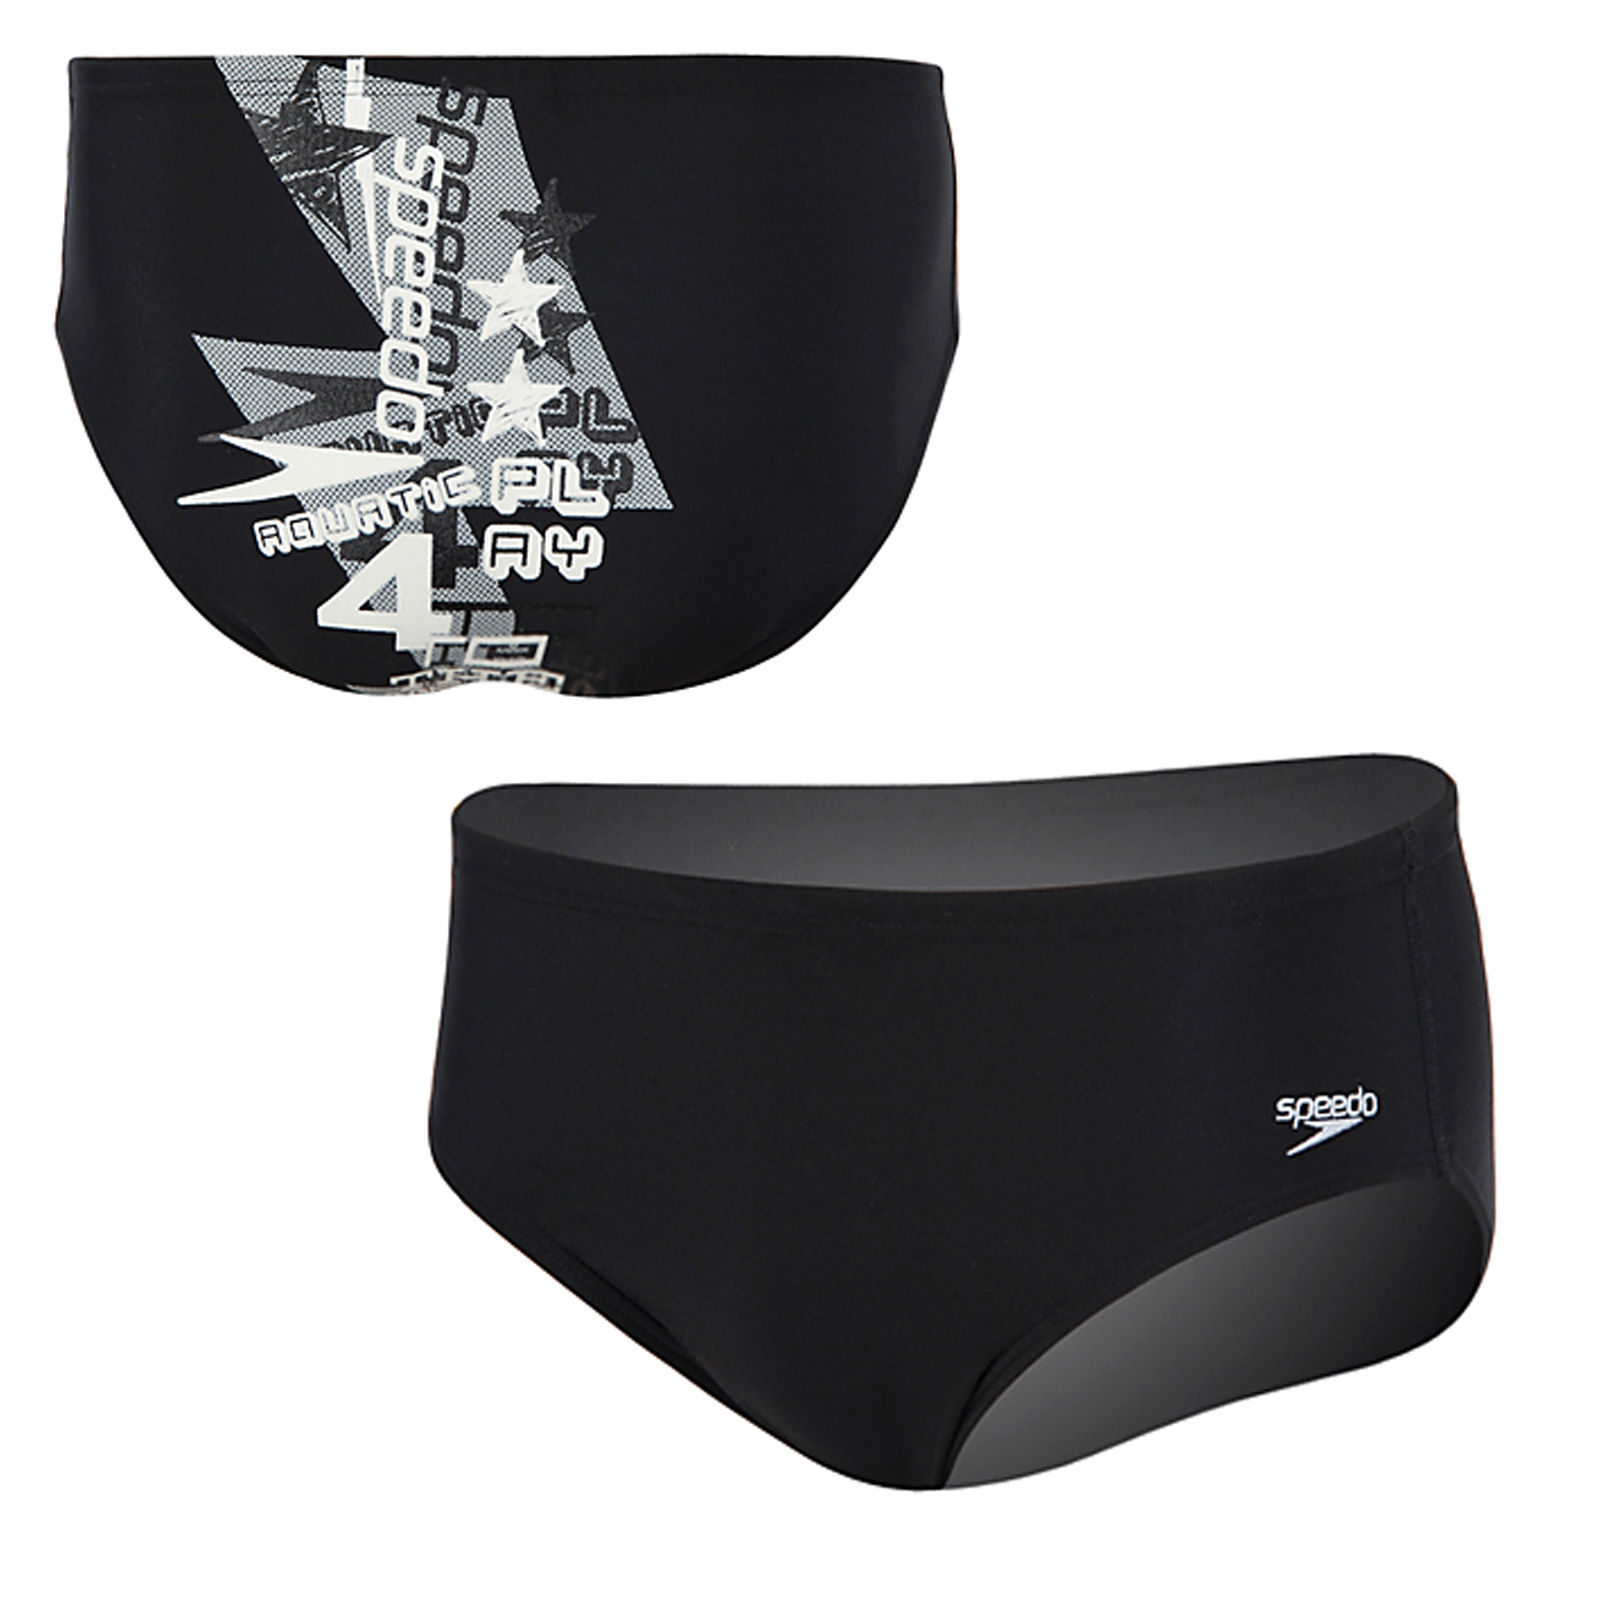 Speedo Men's Endurance Swimsuit Racing Trunk Briefs 8051377 Bolt Black